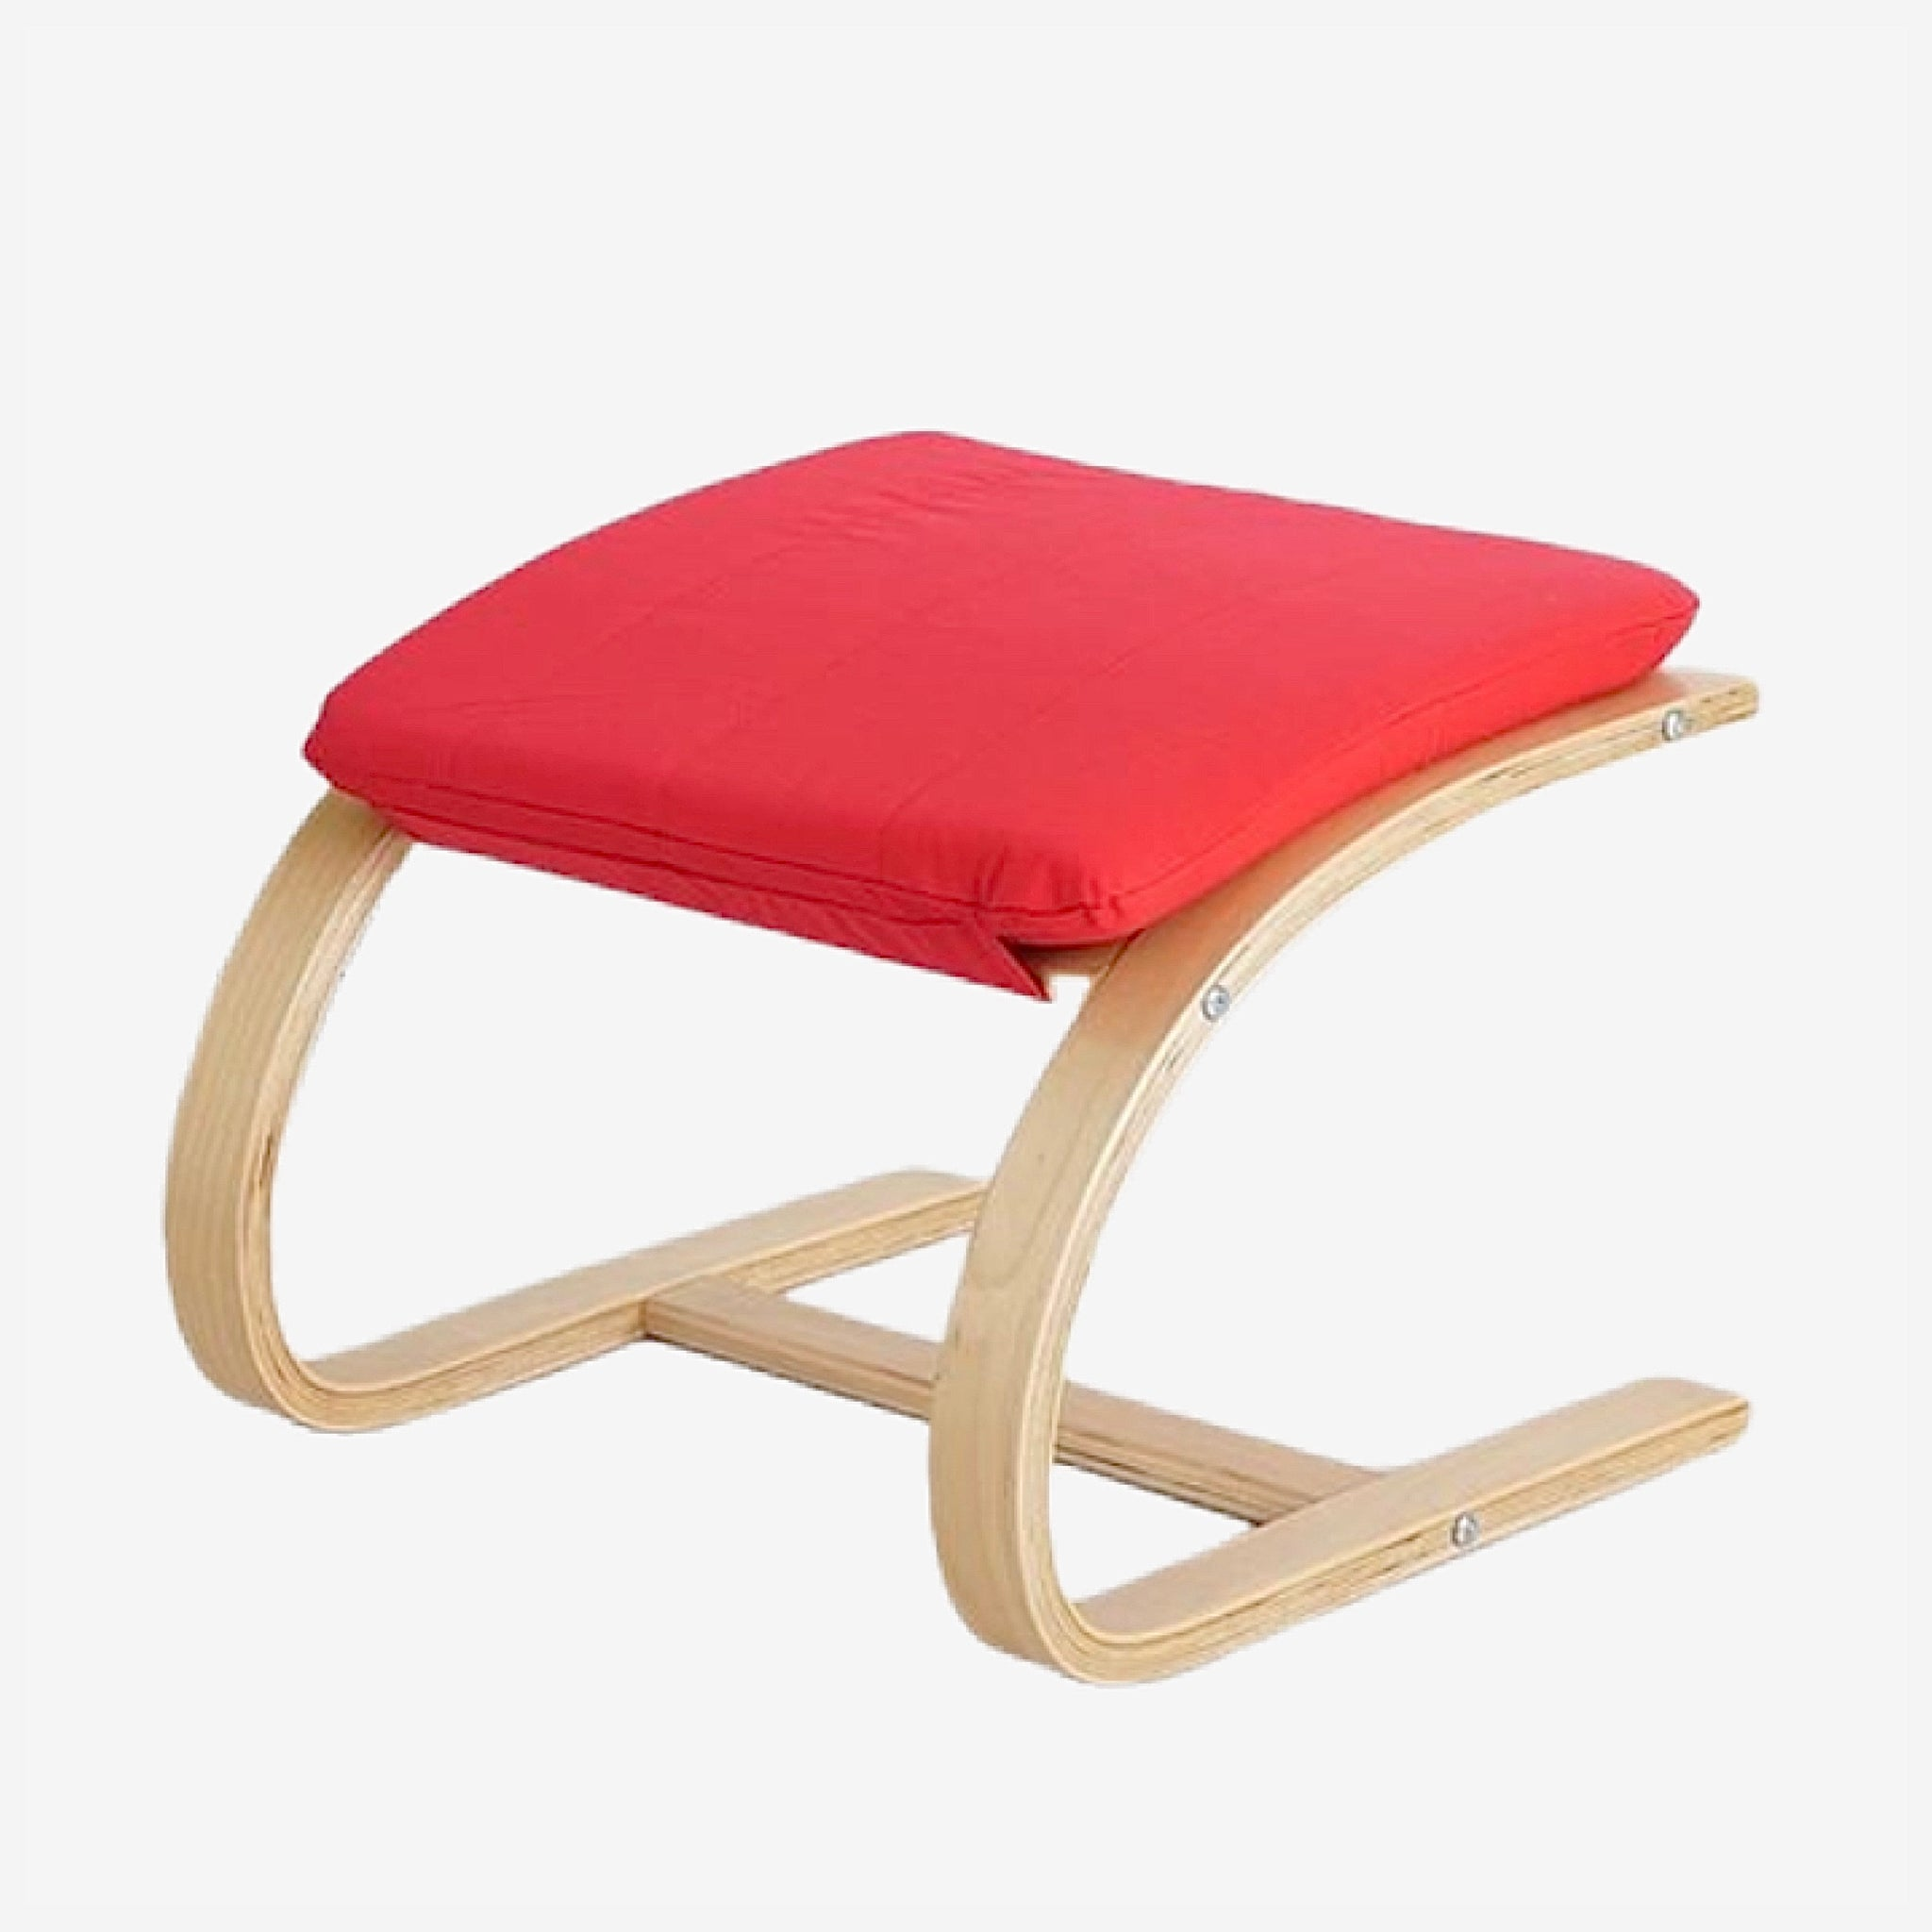 Contemporary Wooden Footstool Comfortable Red Fabric Cushion Ottoman Chair Small Plywood Wood Footrest Stools Furniture